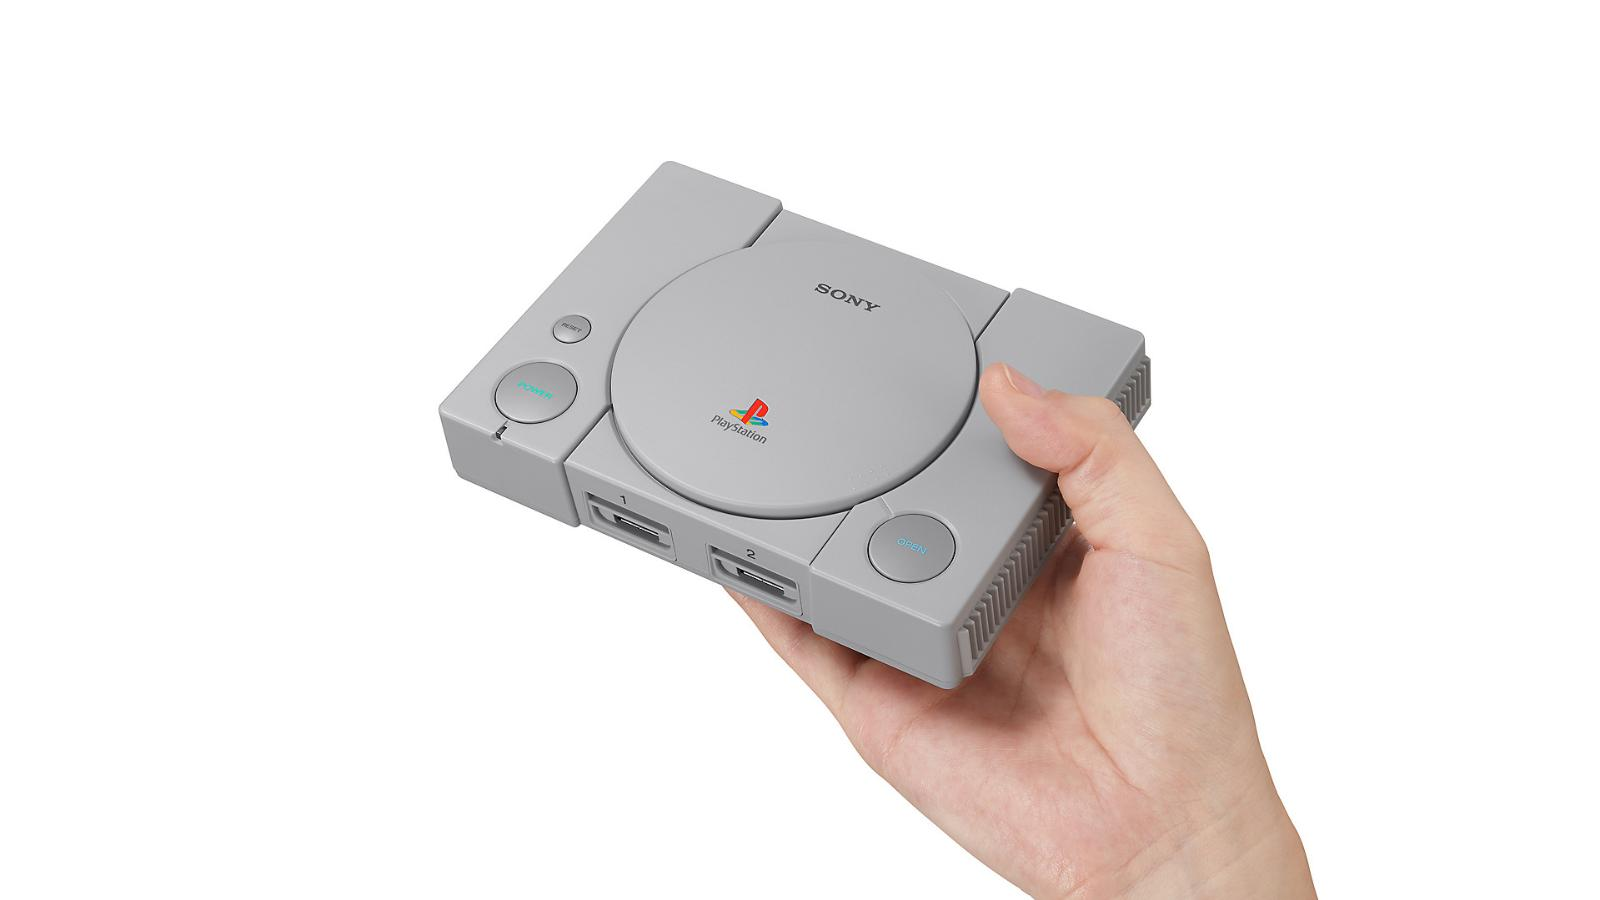 Ps5 Sony Unveils Its New Dualsense Controller For The Next Gen Console Cnn